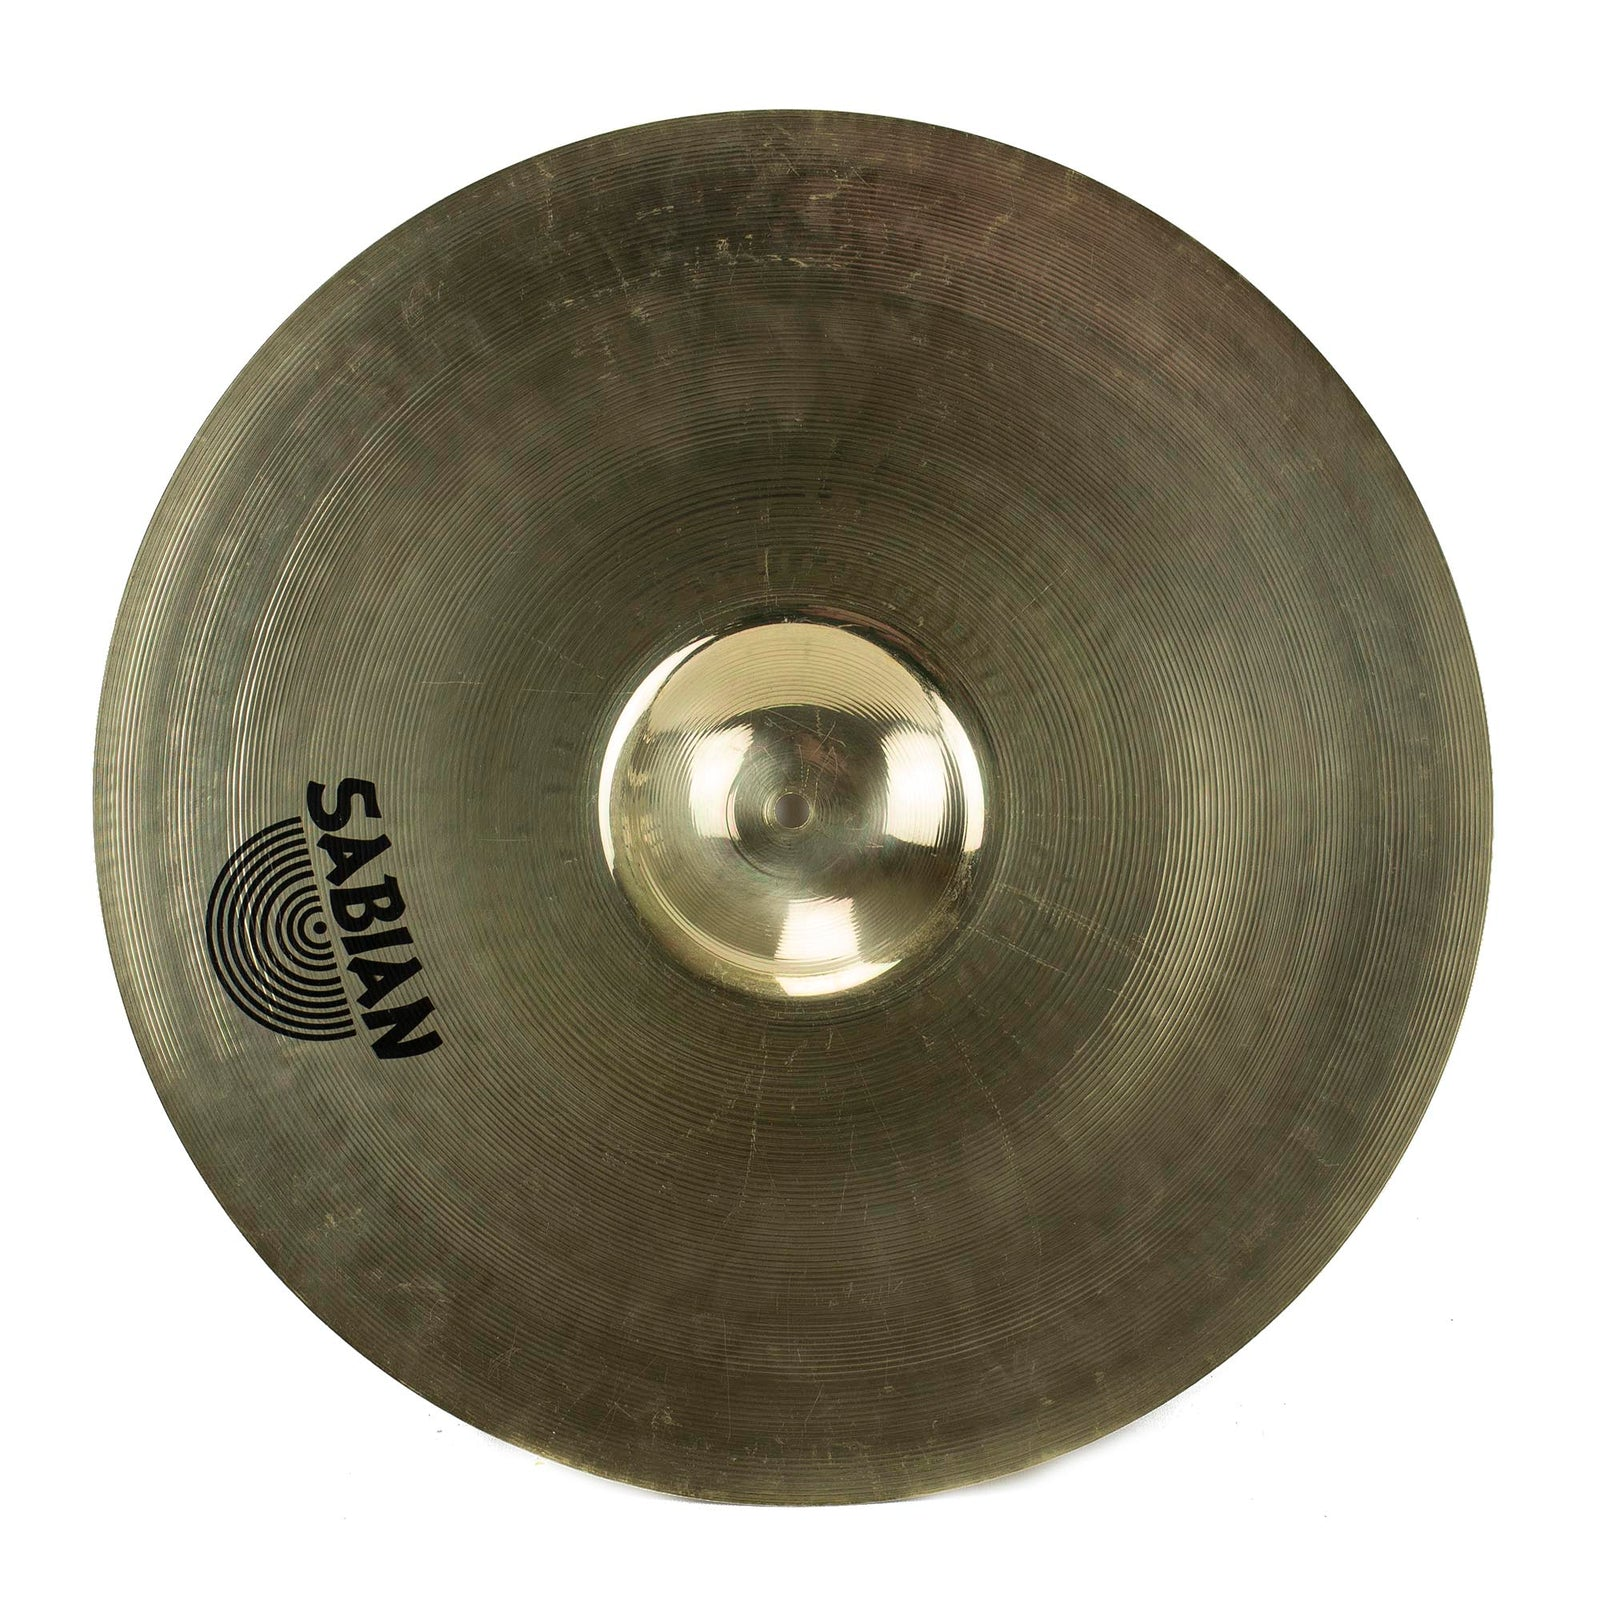 "Sabian 20"" XSR Rock Ride - Used"